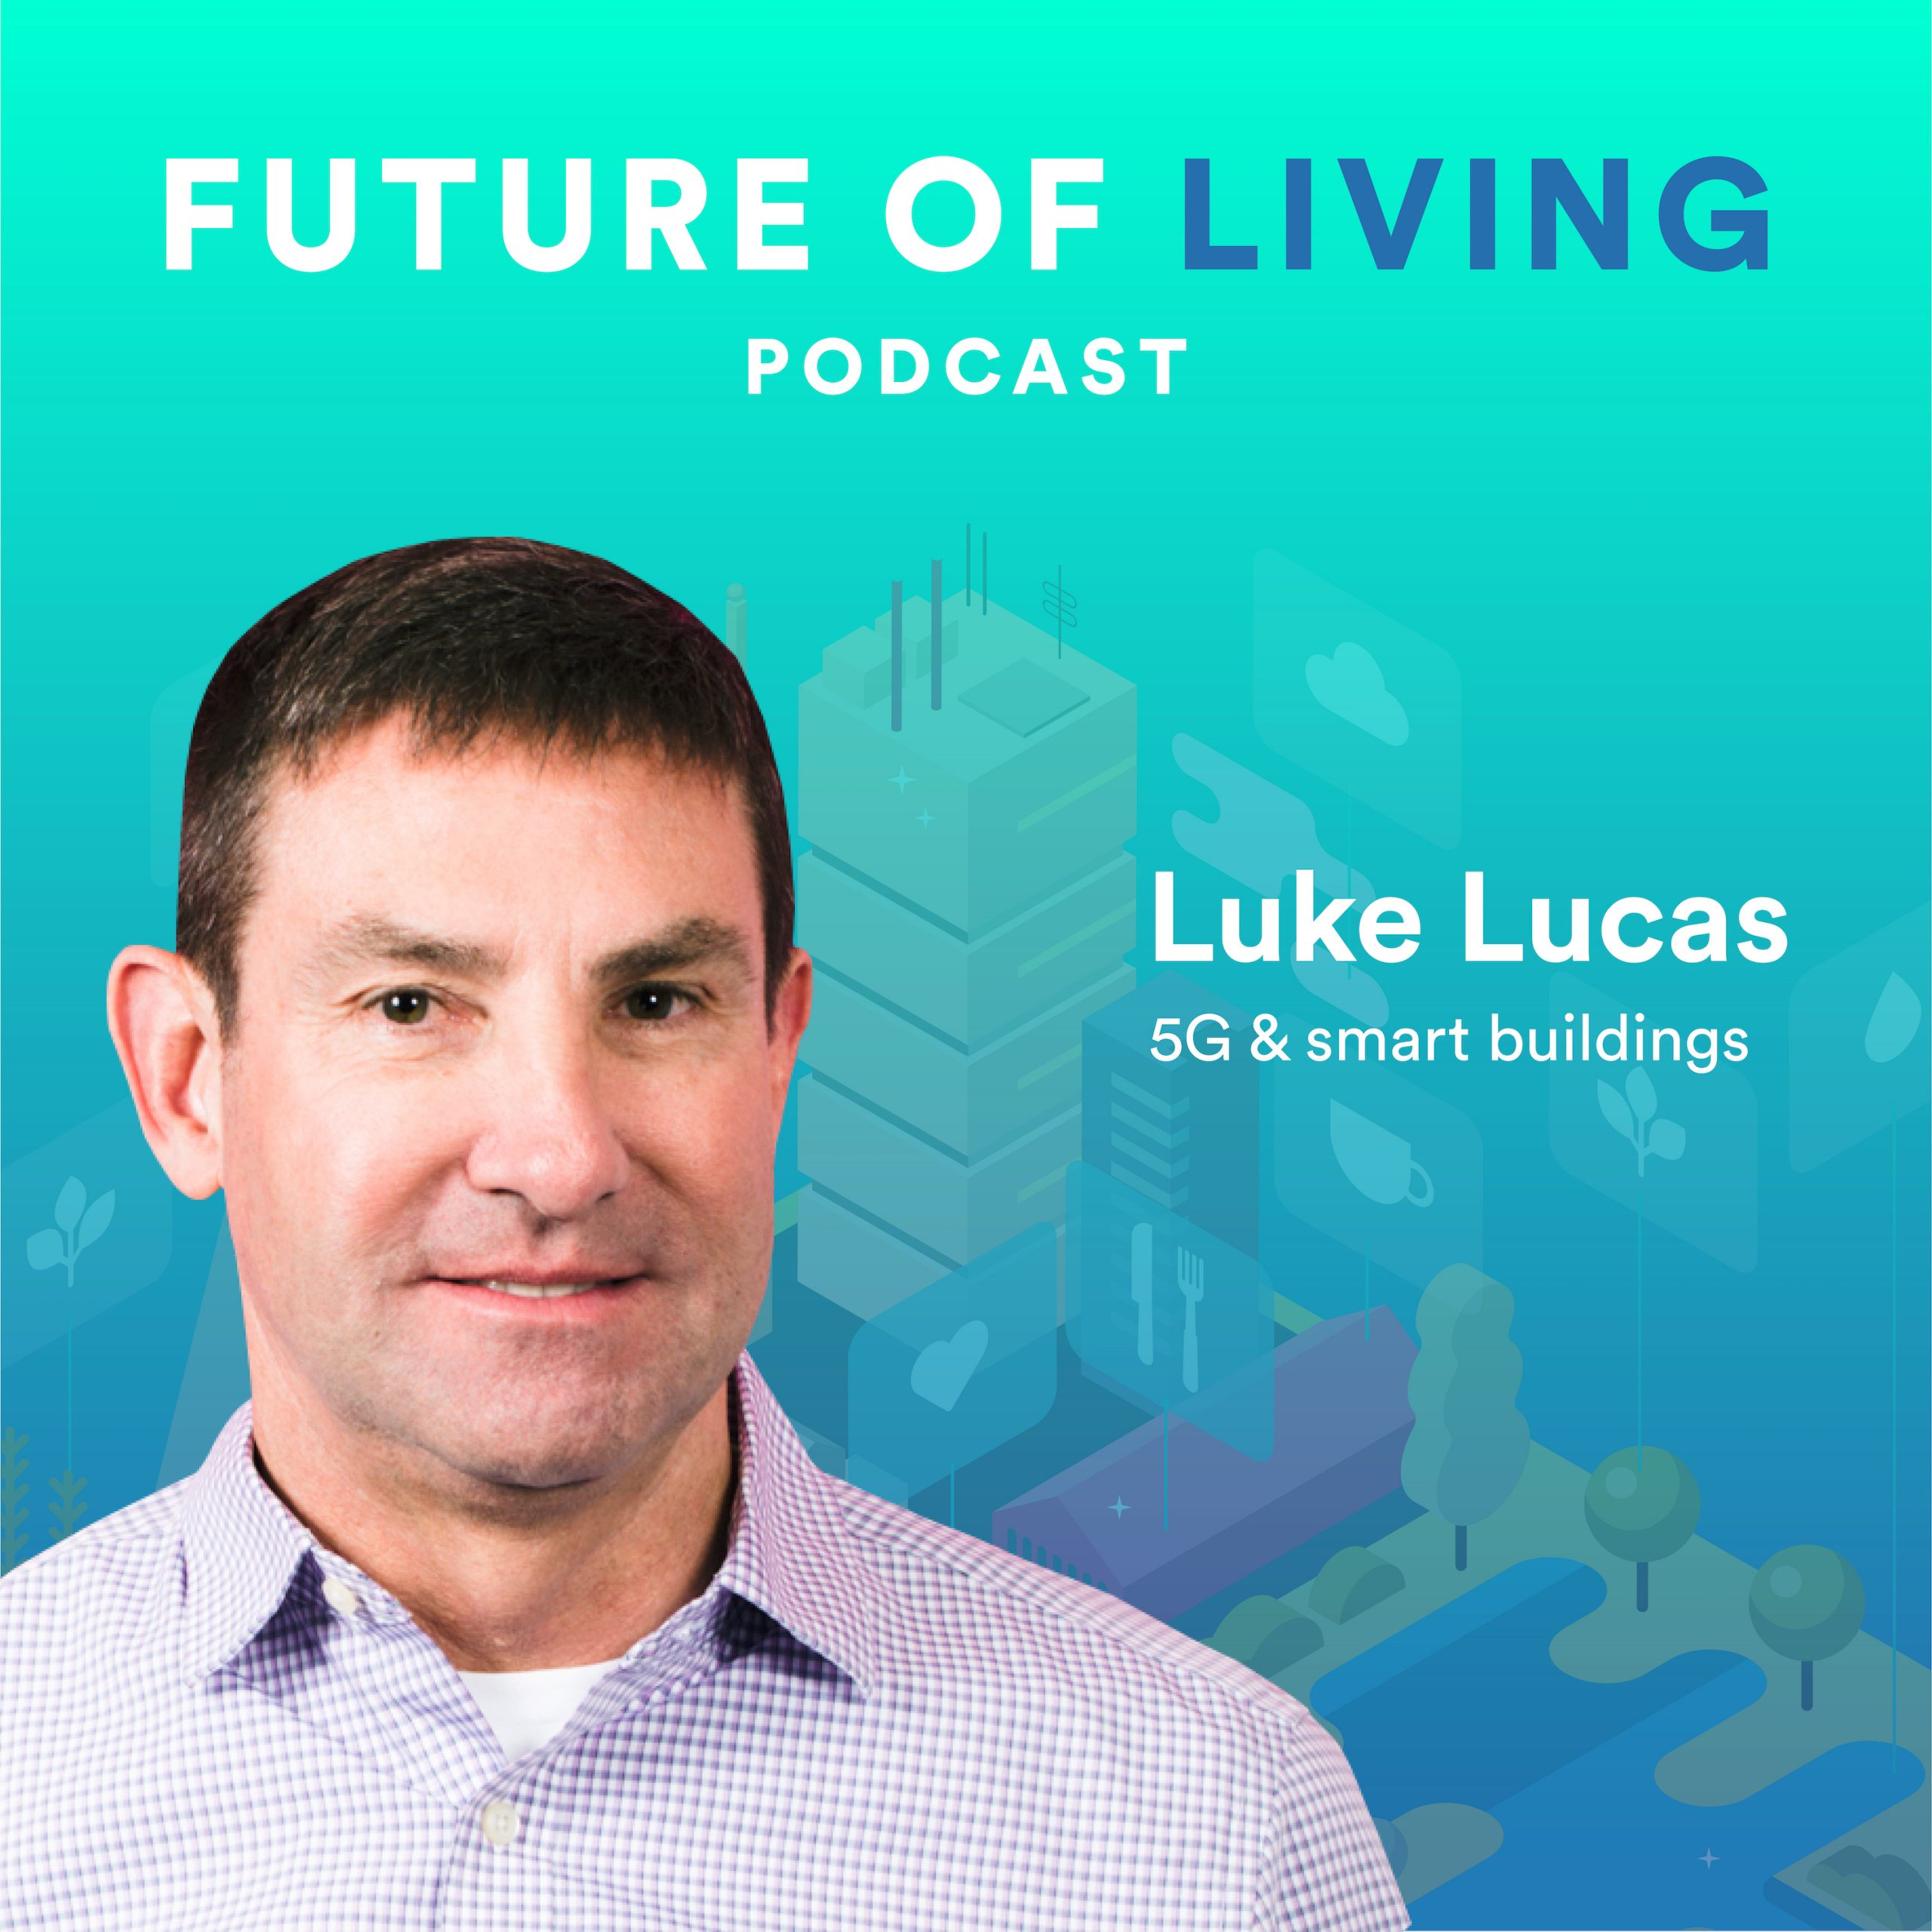 Luke Lucas on 5G & Smart Buildings